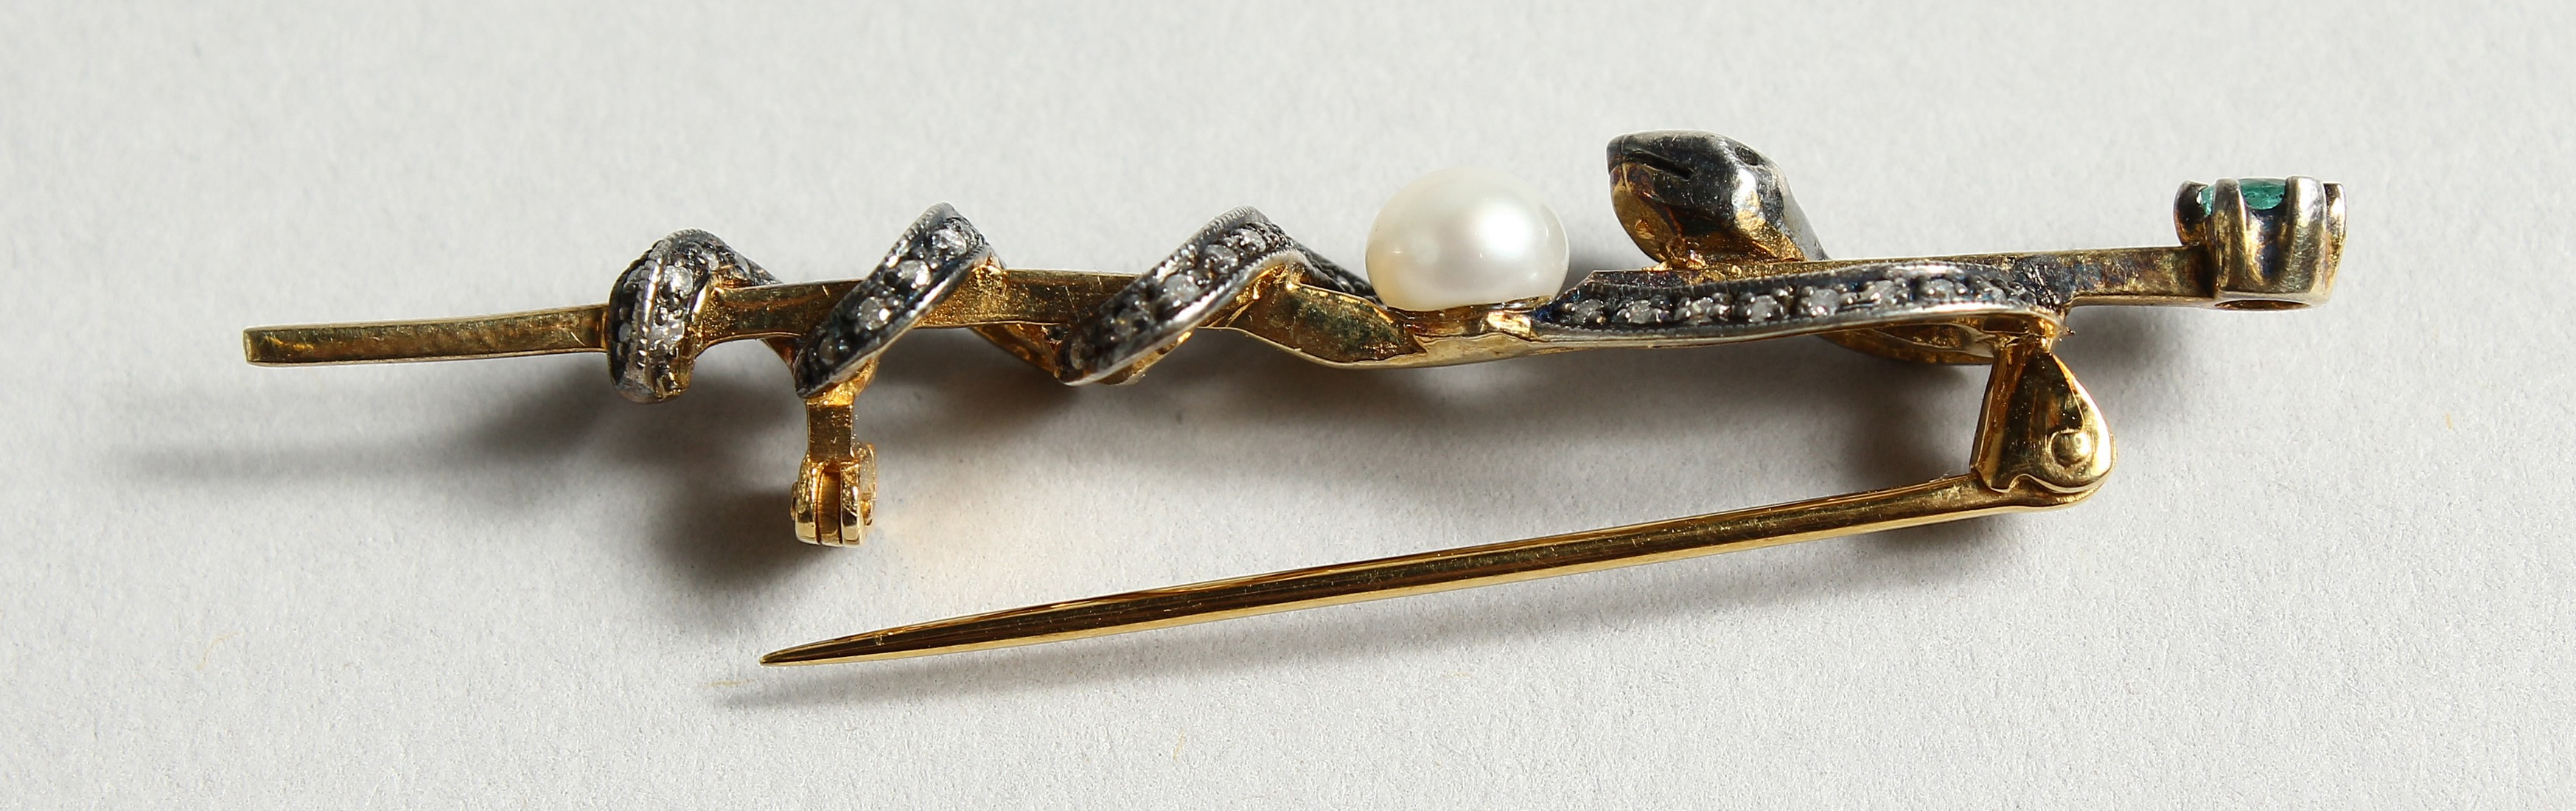 A DIAMOND AND PEARL SNAKE TIE PIN (Harrods) - Image 4 of 5